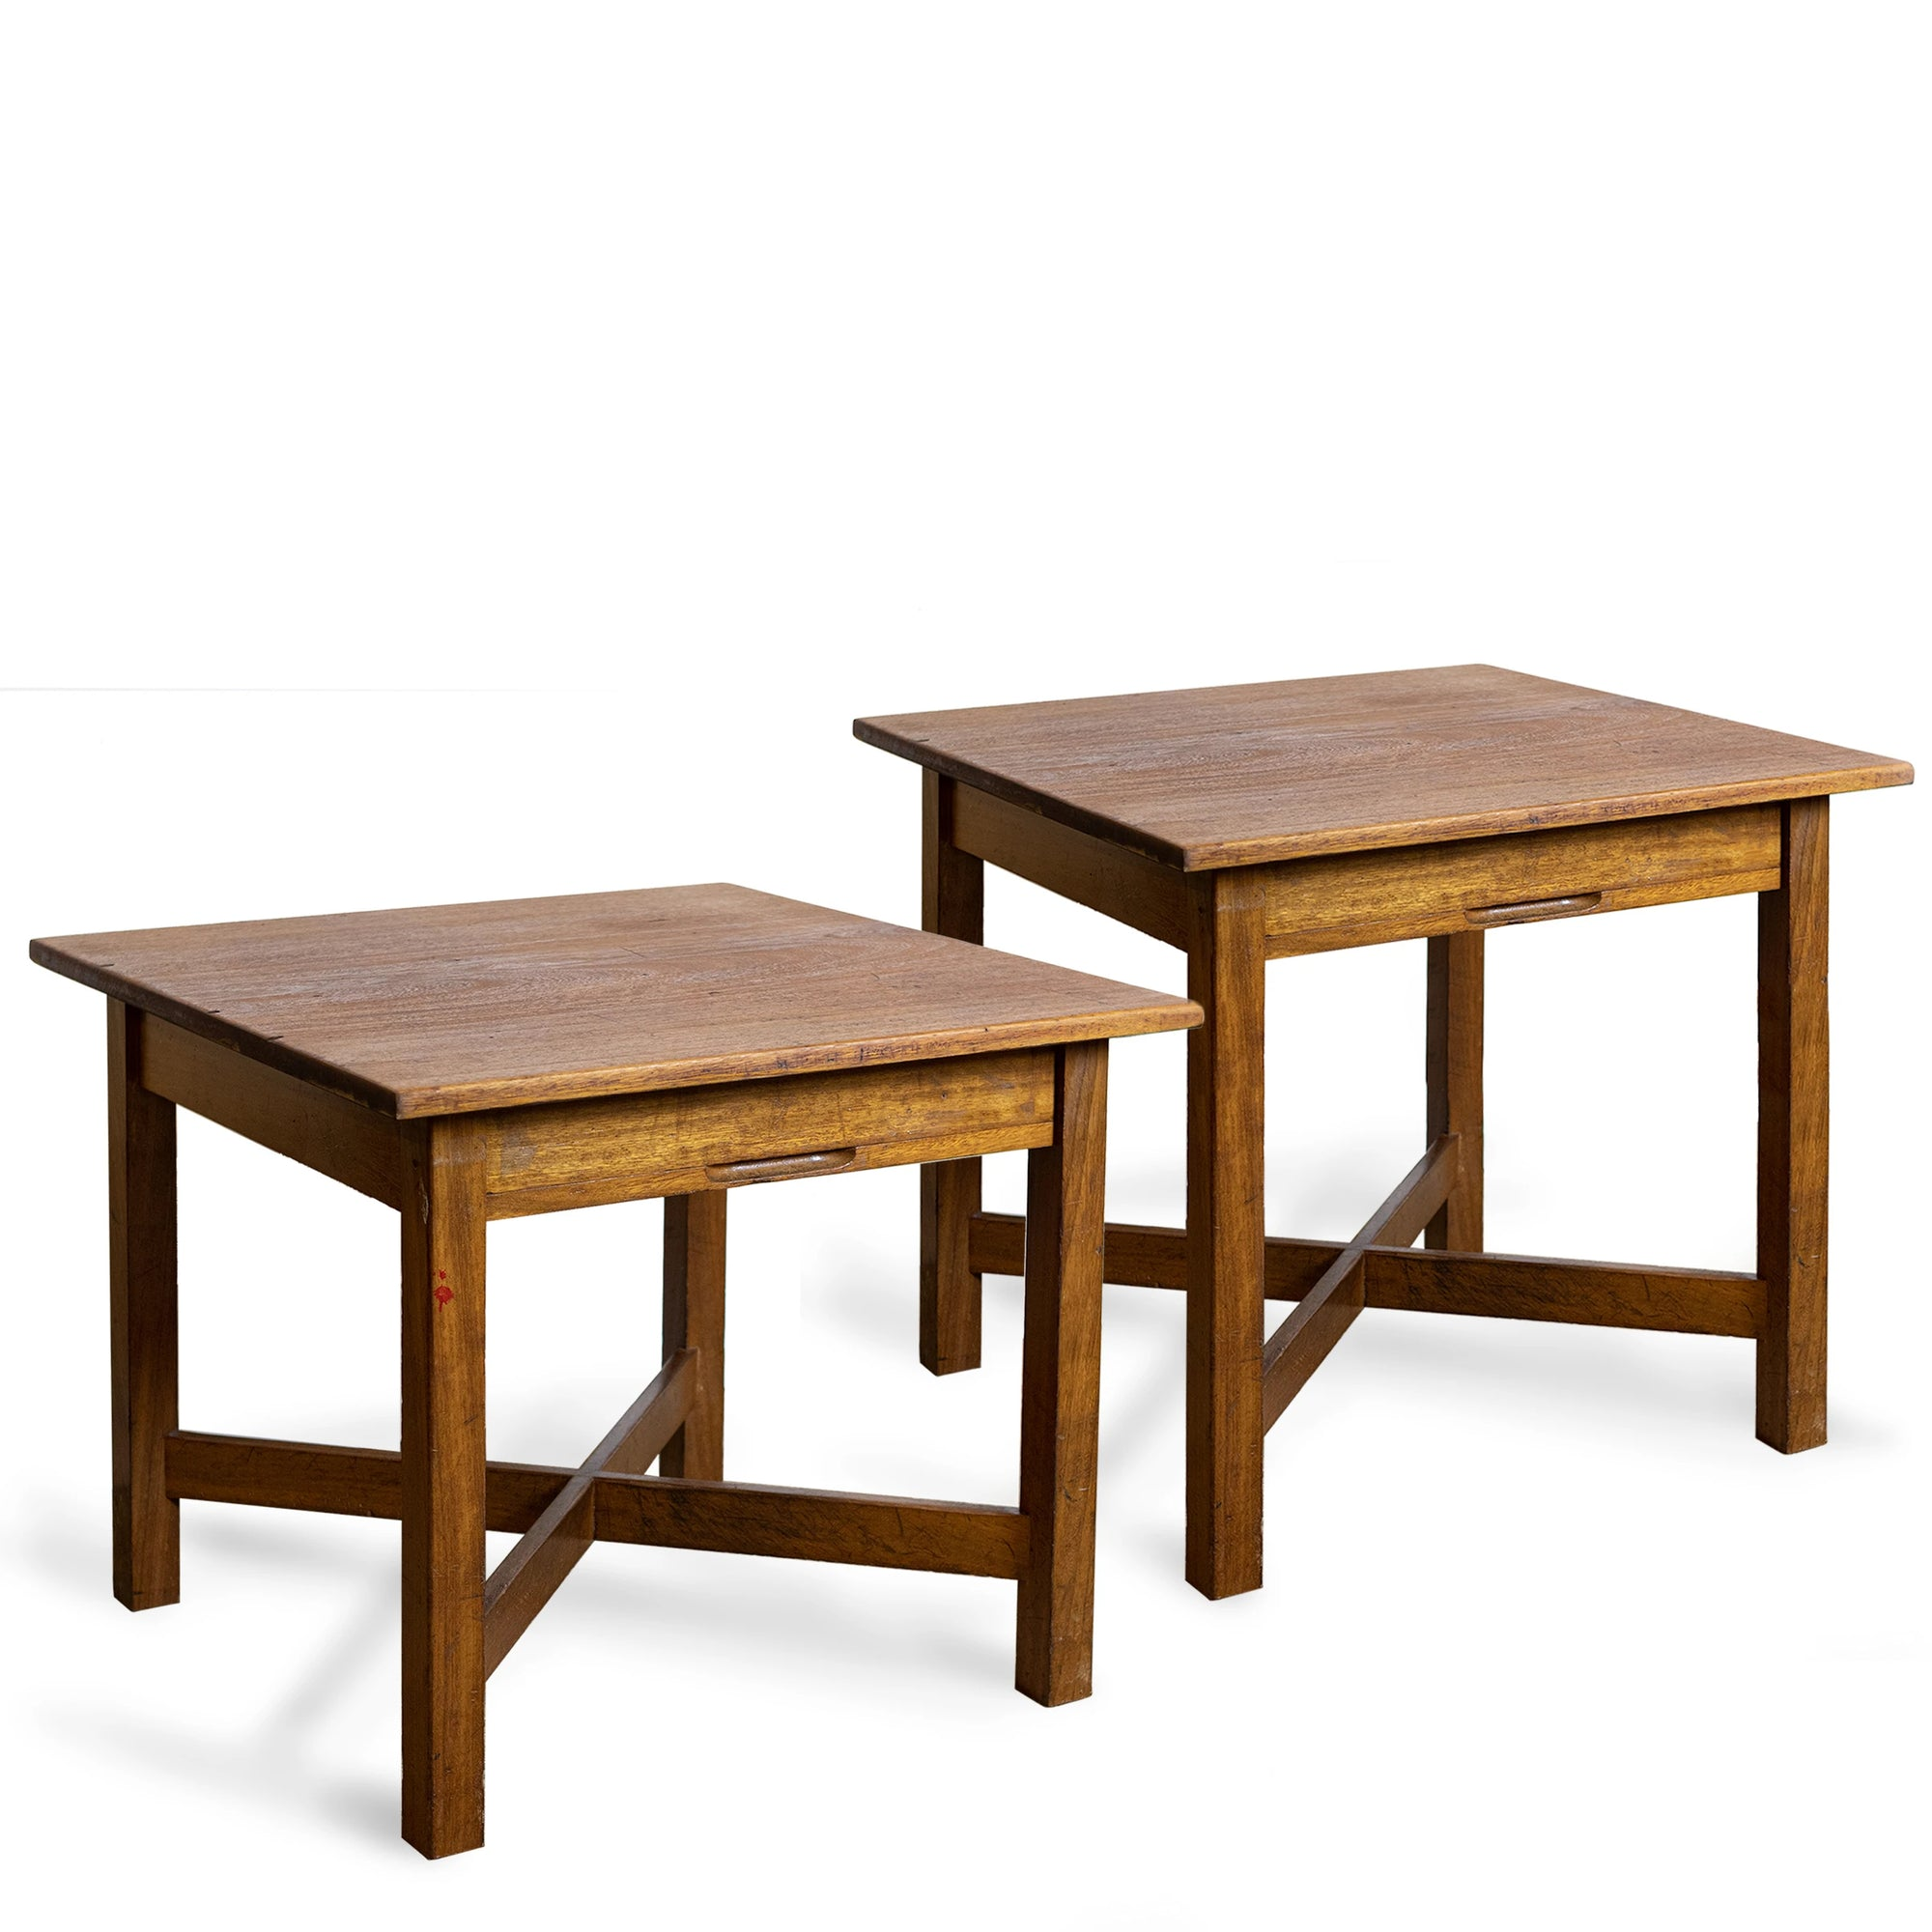 Reclaimed Vintage Solid Teak Square Tables | Desks with Drawer (many available) | The Architectural Forum